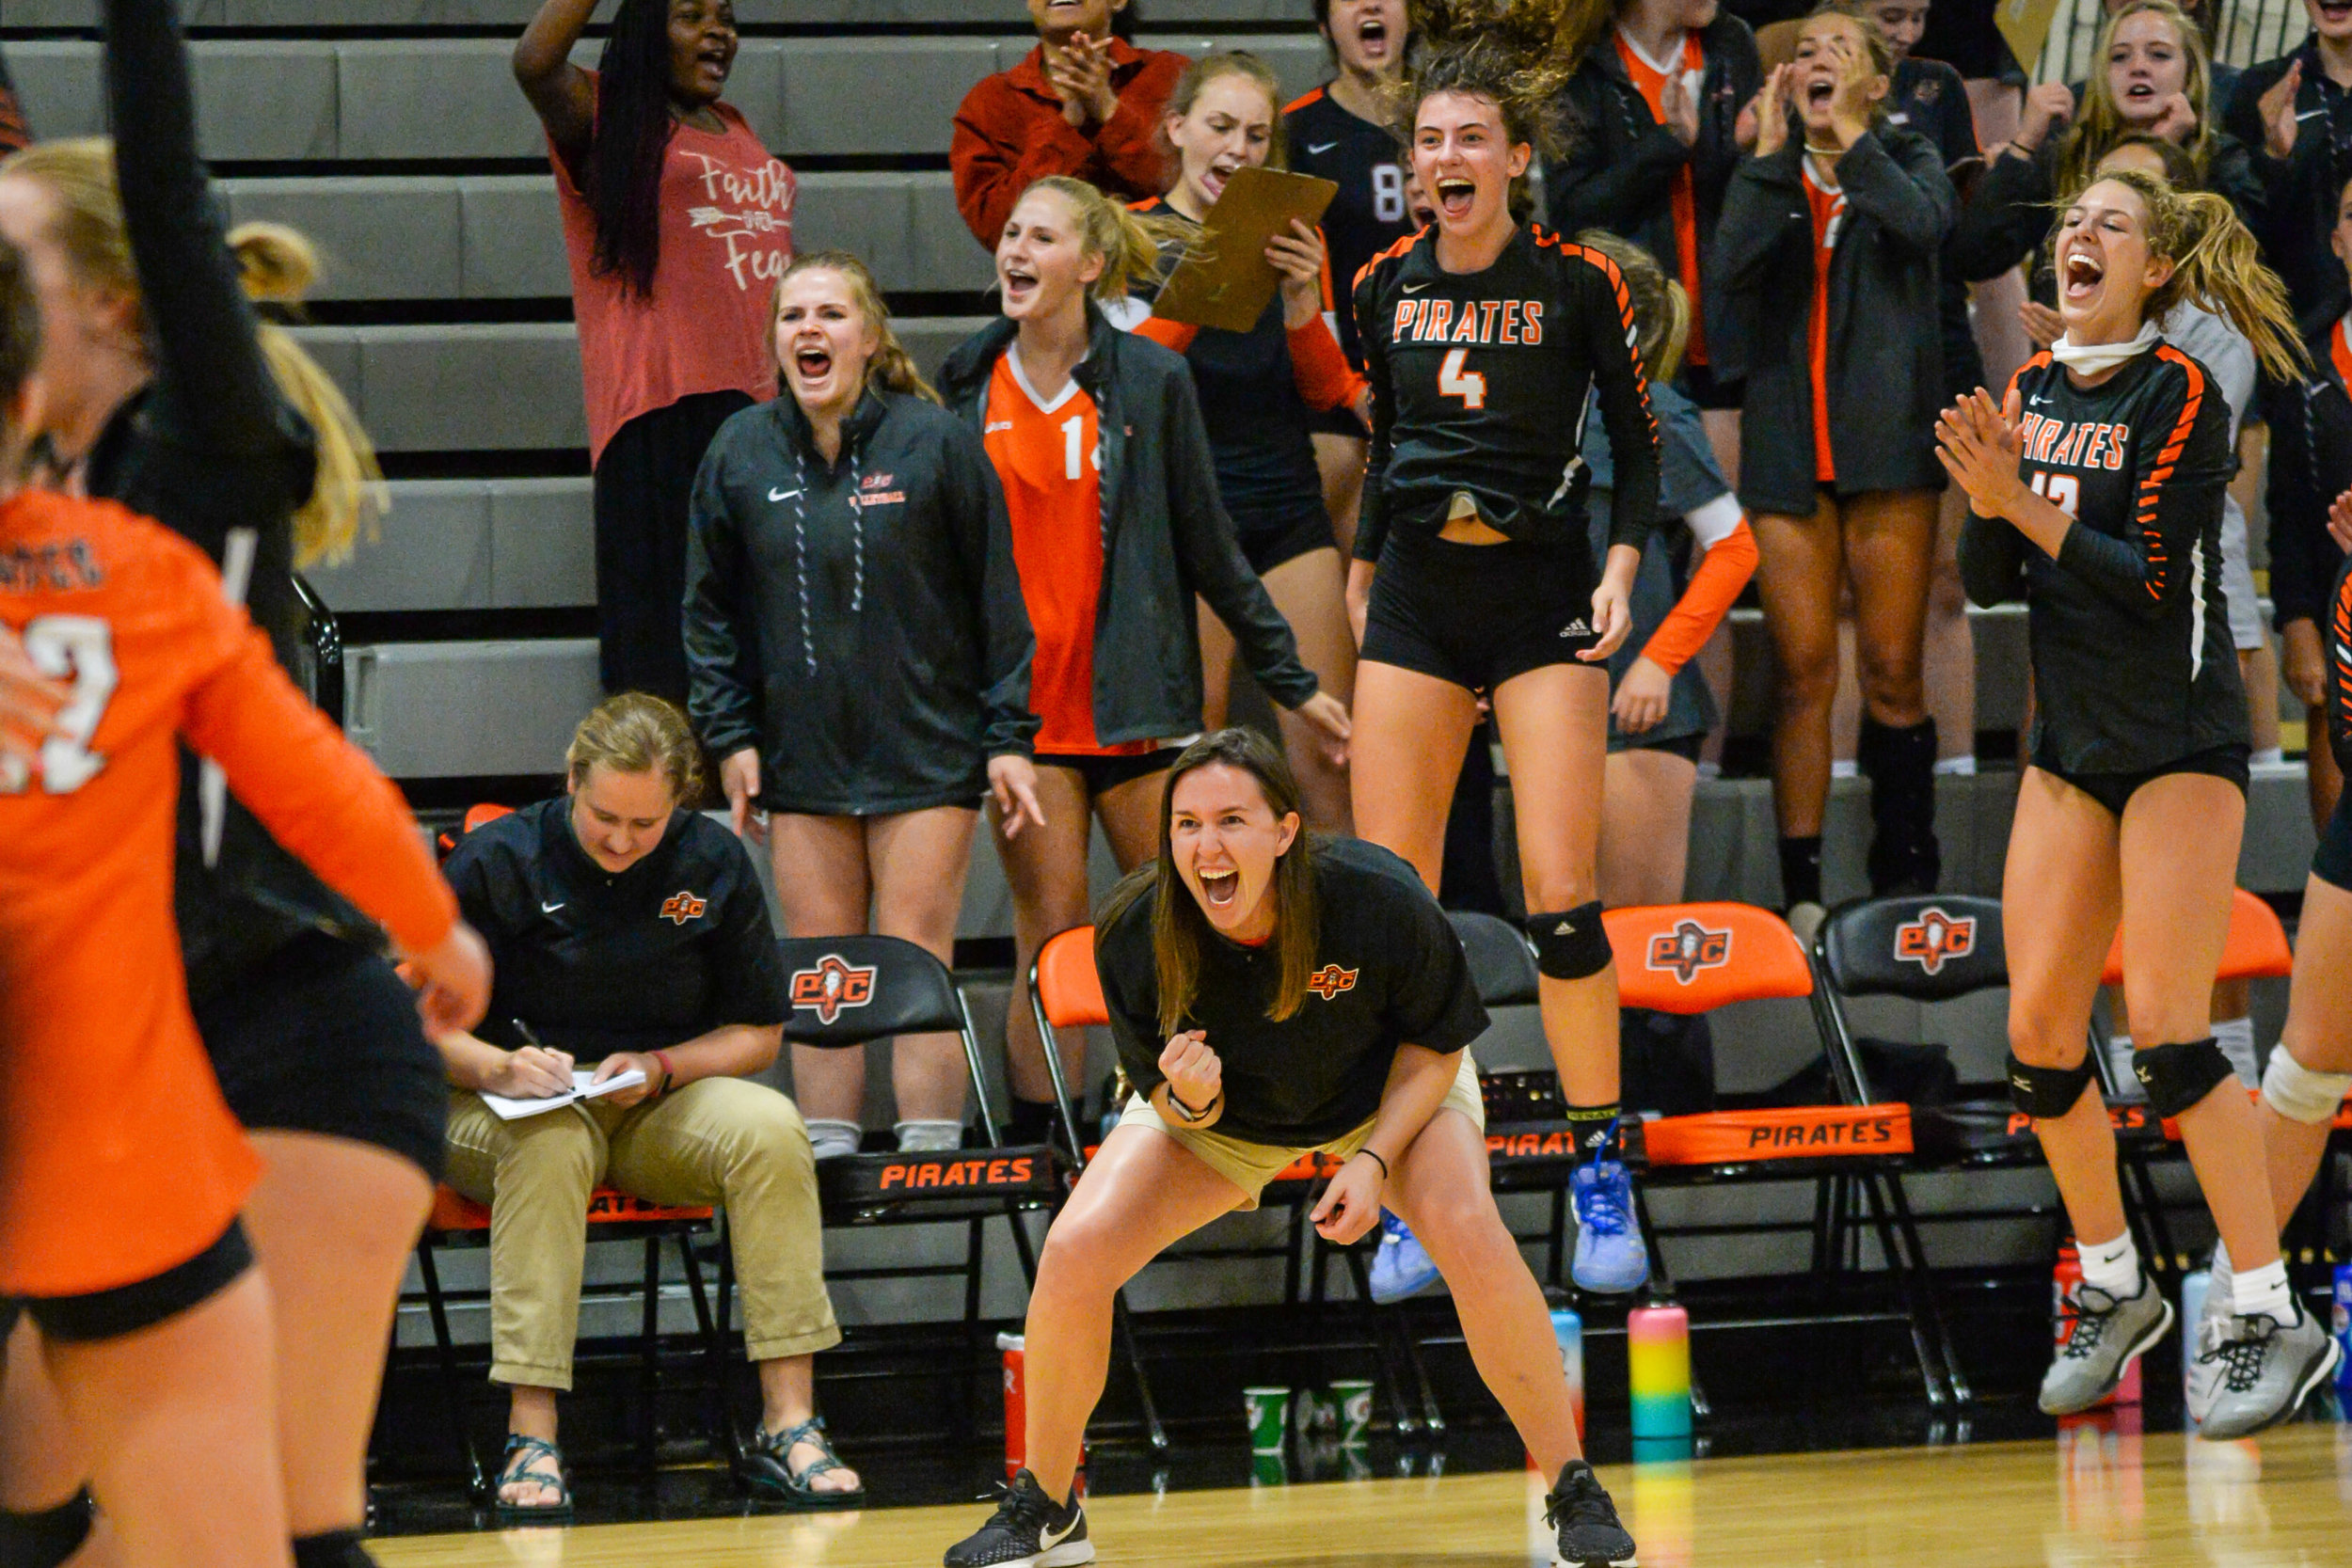 TODD NUGENT PHOTOGRAPHY/Special to the Citizen  Platte County volleyball coach Katlyn Donovan, center, and her team celebrates the end of a win against Park Hill on Thursday, Sept. 5 at Platte County High School.